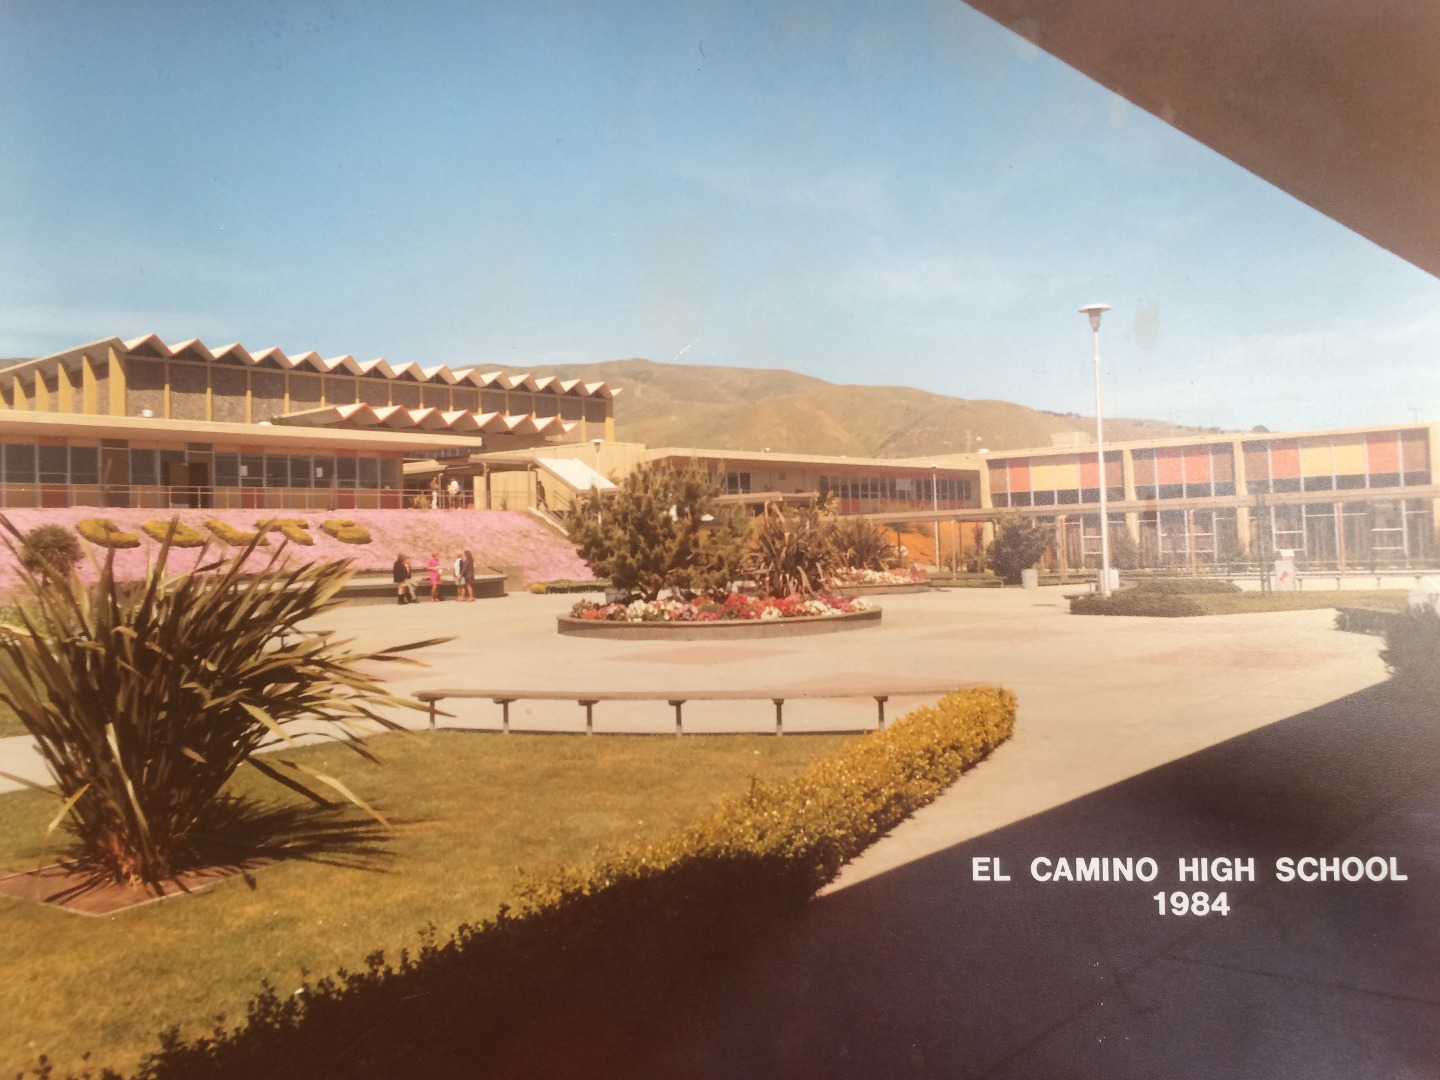 el camino high school 1984